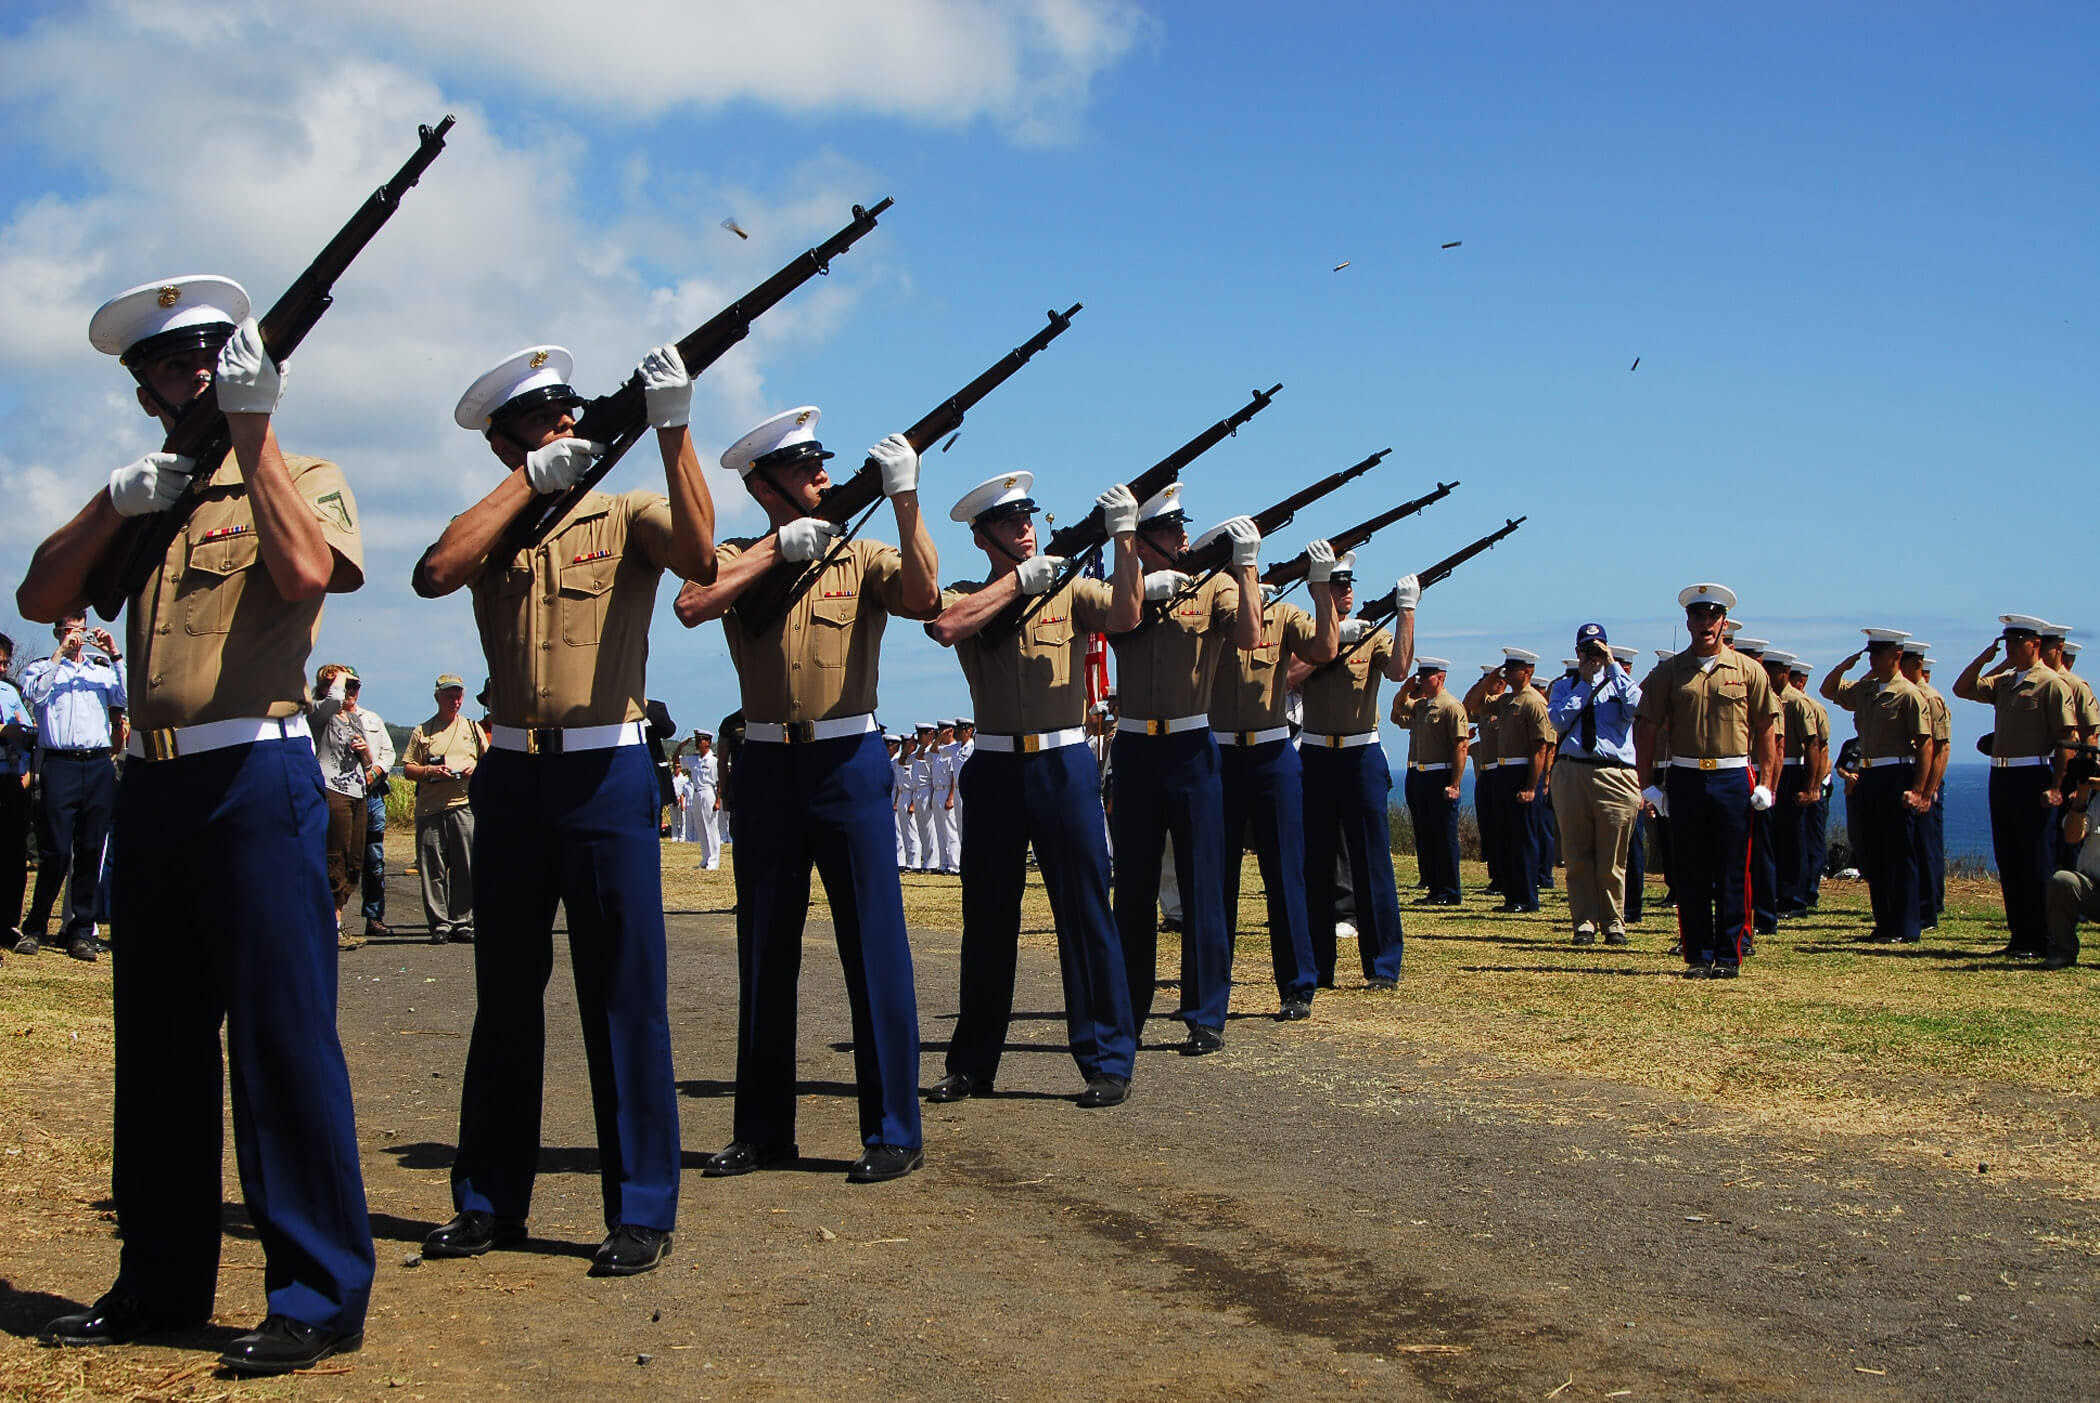 IWO TO, Japan (Mar. 3, 2010) US Marines fire a 21 gun salute to render honors to those lost in the Battle of Iwo Jima during the 65th anniversary commemoration of the battle. USS Tortuga (LSD 49) arrived at Iwo To, formerly known as Iwo Jima, on Feb. 28 to support the ceremony. US Navy photo by Lt. Cmdr. Denver Applehans